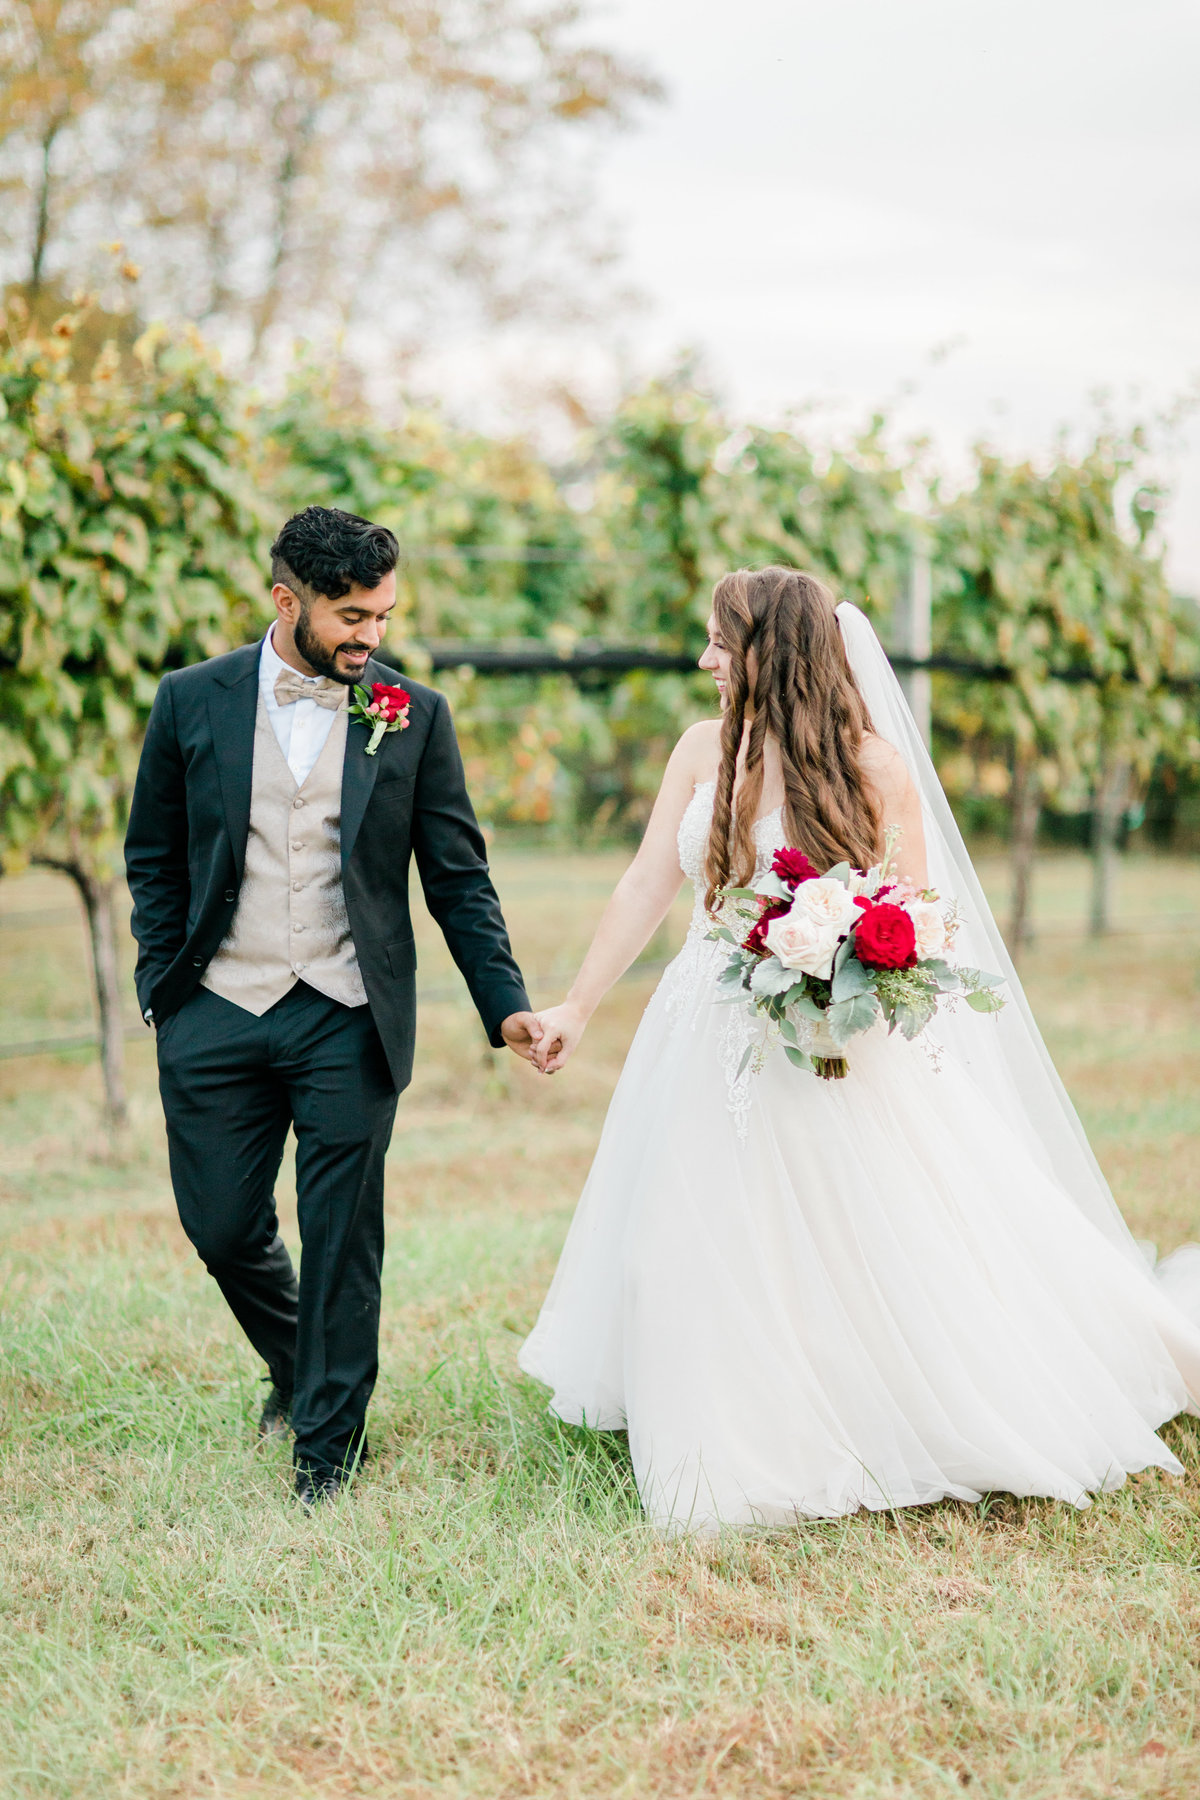 Williamsburg_Winery_Fall_Wedding_Virginia_DC_Photographer_Angelika_Johns_Photography-0020